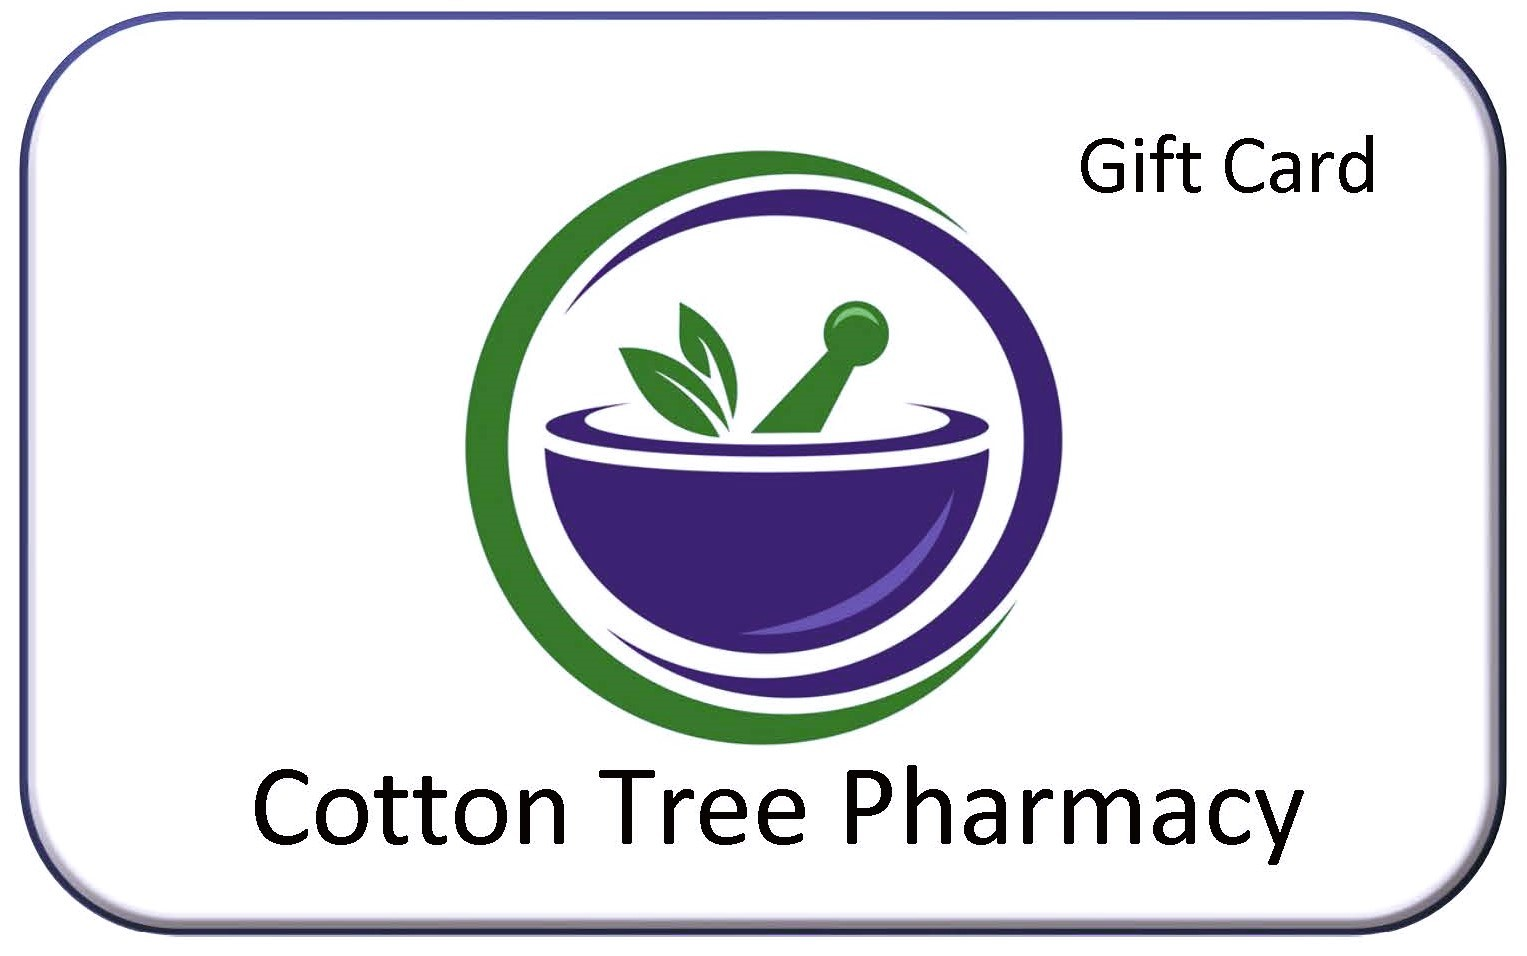 Cotton Tree Gift Card 00177